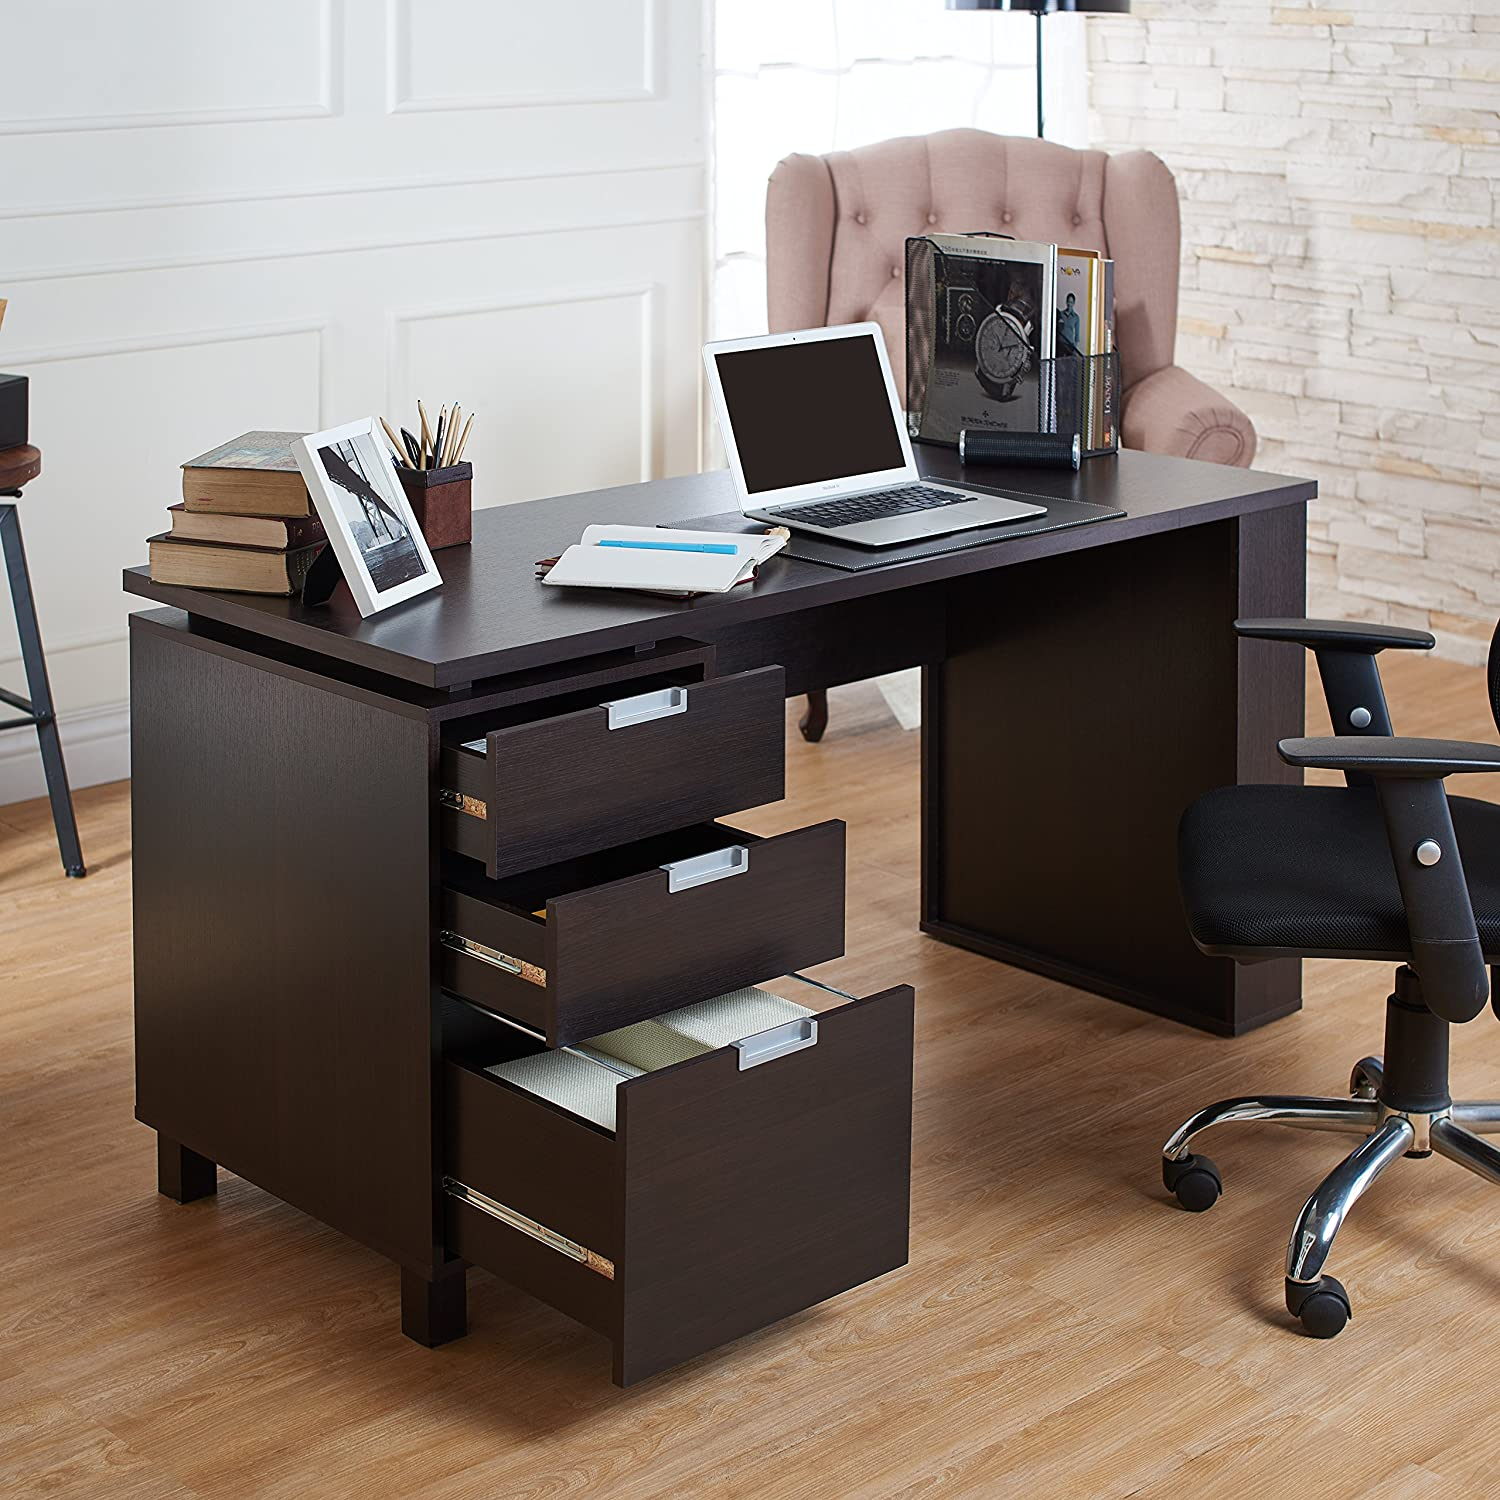 cfm hayneedle desk product master and espresso cabinet white liber with filing nexera t computer nexeralibertcomputerdeskwithfilingcabinetwhiteandespresso